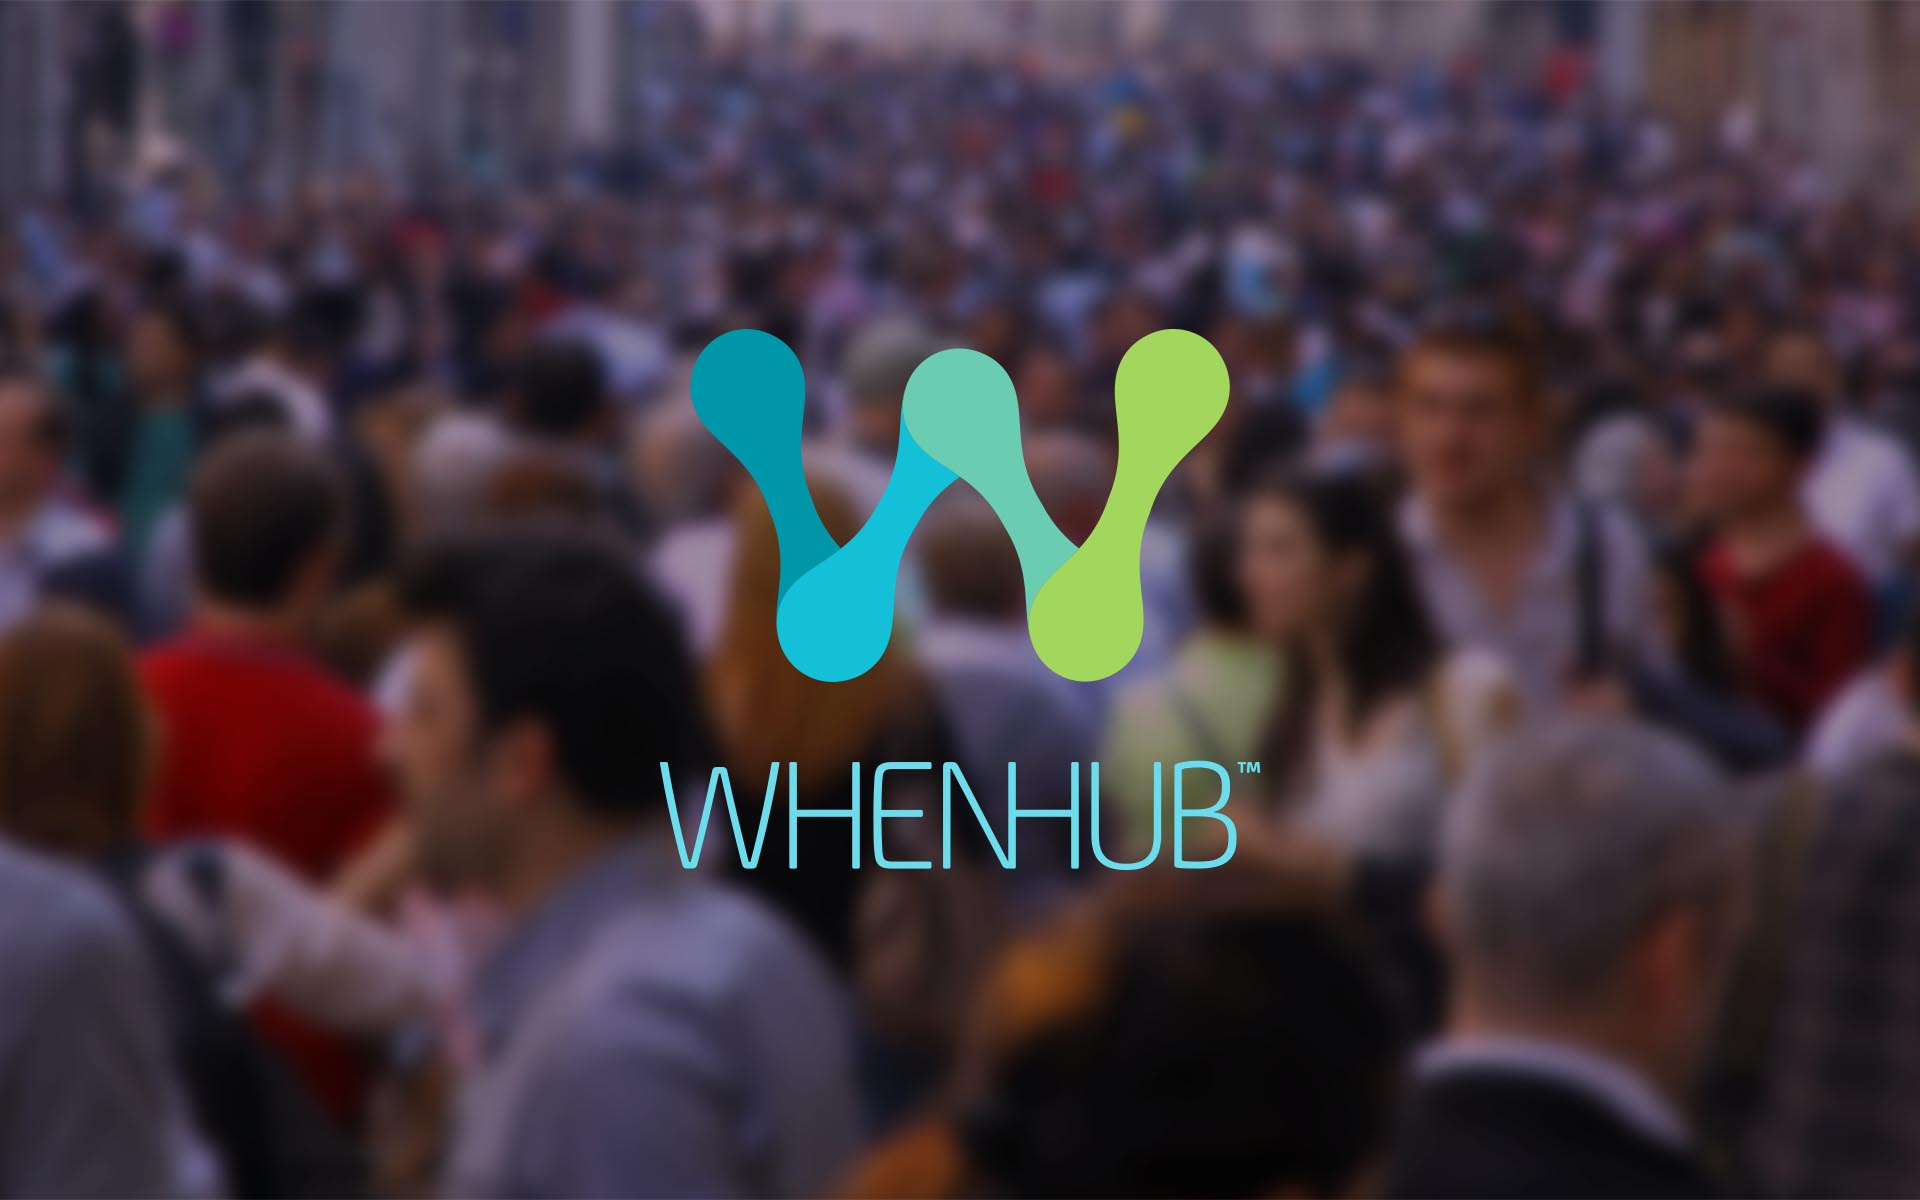 WhenHub Launches Token Sale That Will Allow Experts To Monetize Unbilled Time By Connecting With People Who Need Consulting On Any Topic Imaginable